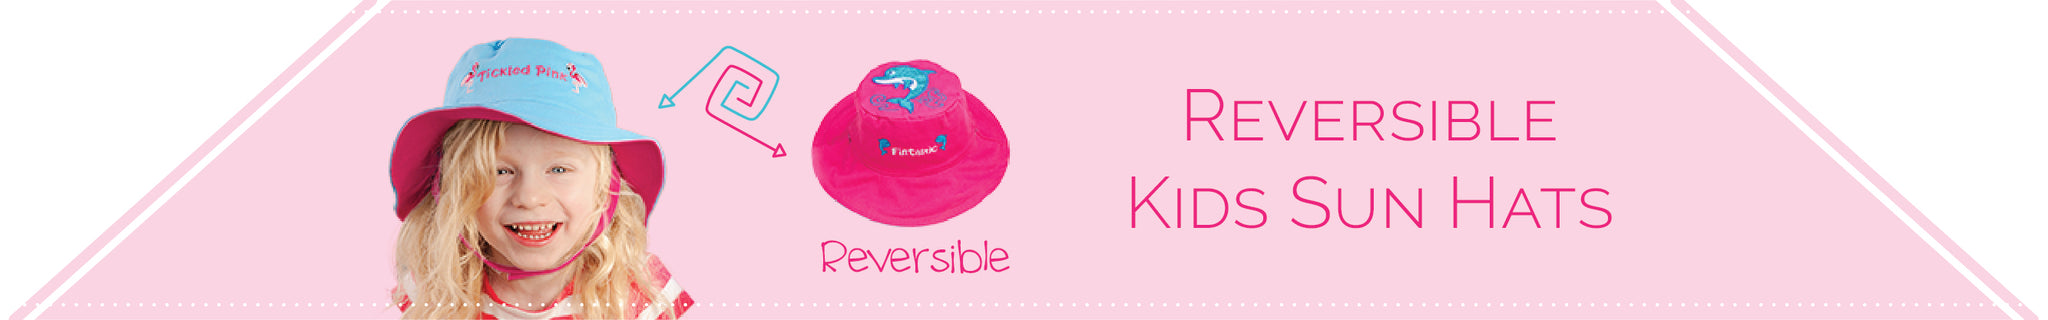 Reversible Kids Sun Hats